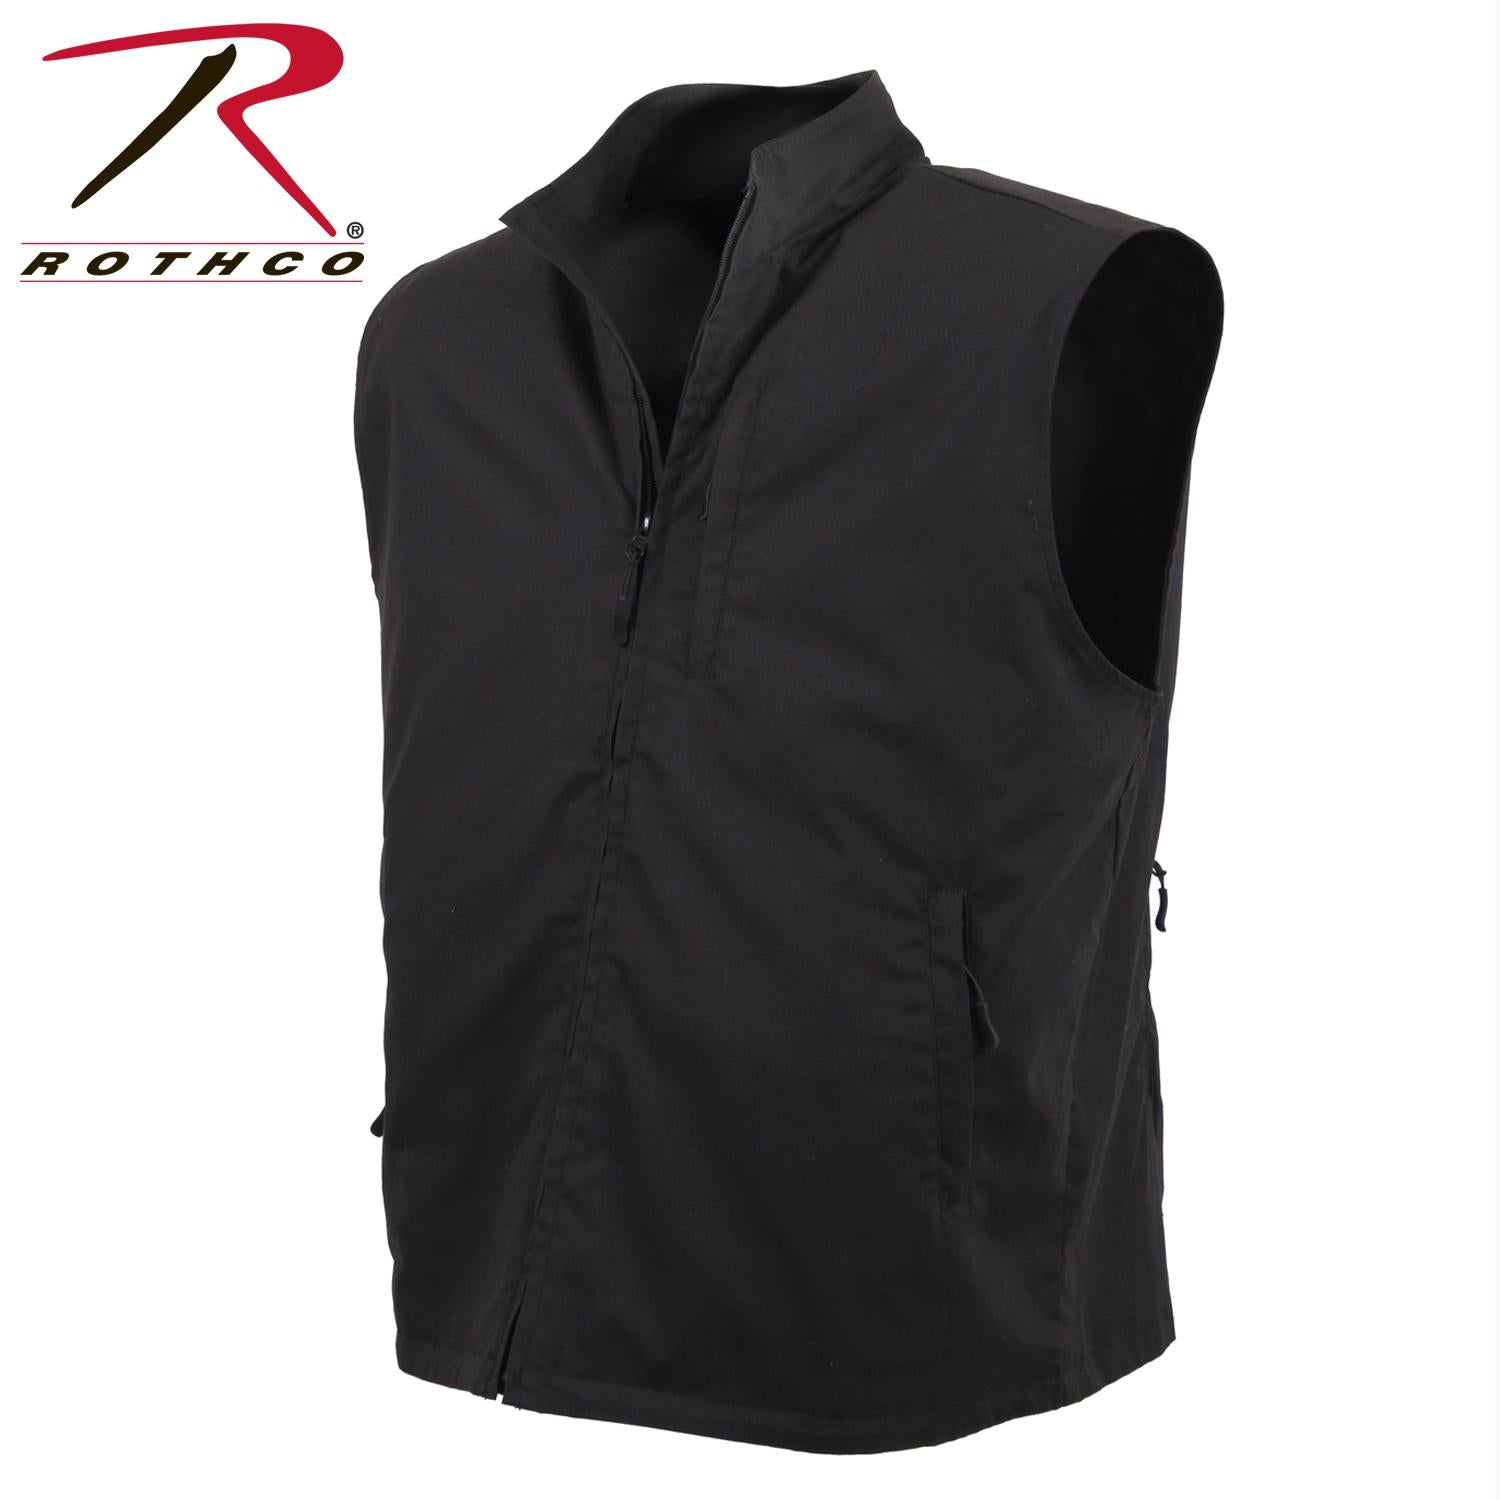 Rothco Undercover Travel Vest - Black / 3XL